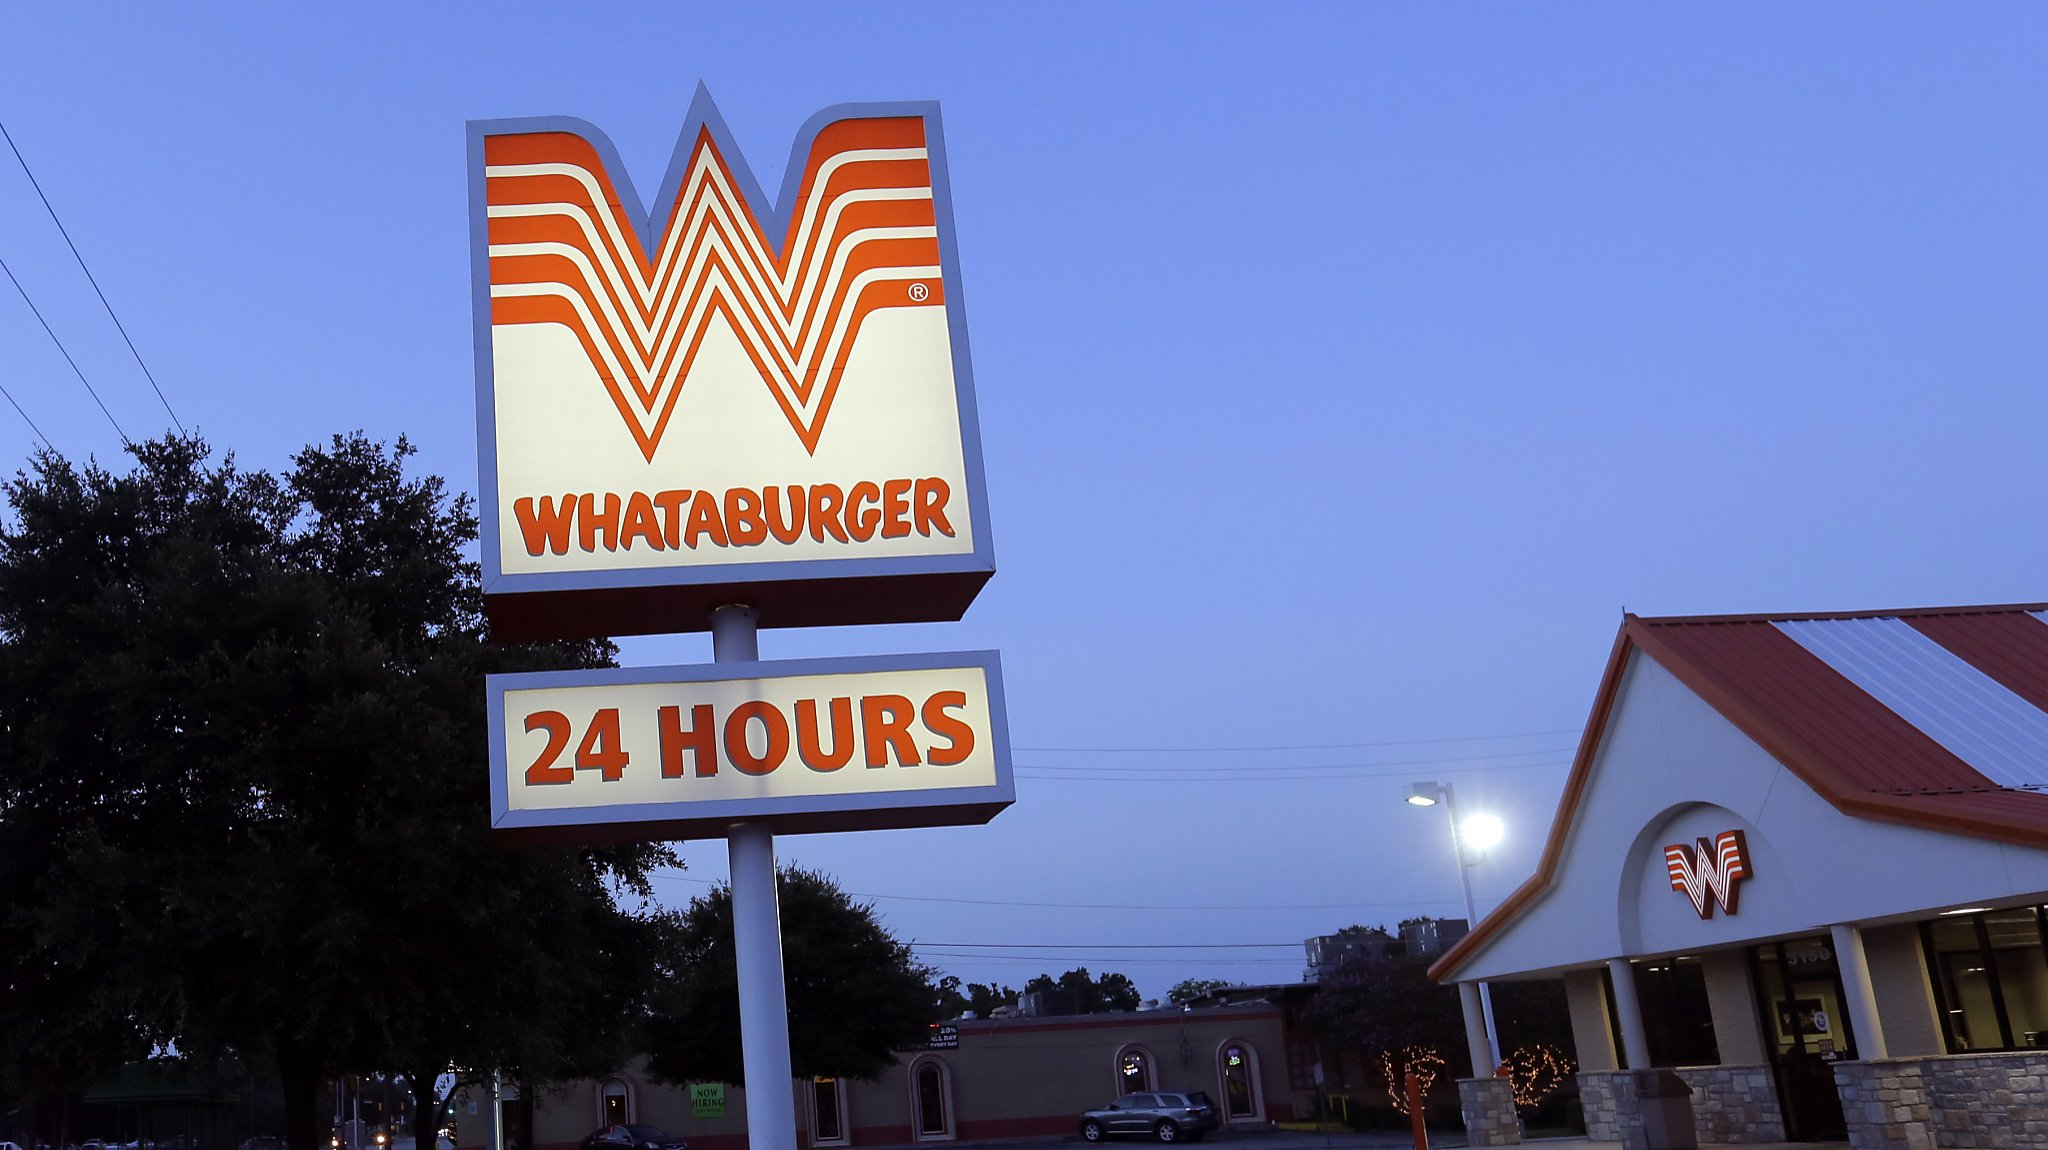 Whataburger Locations in San Antonio